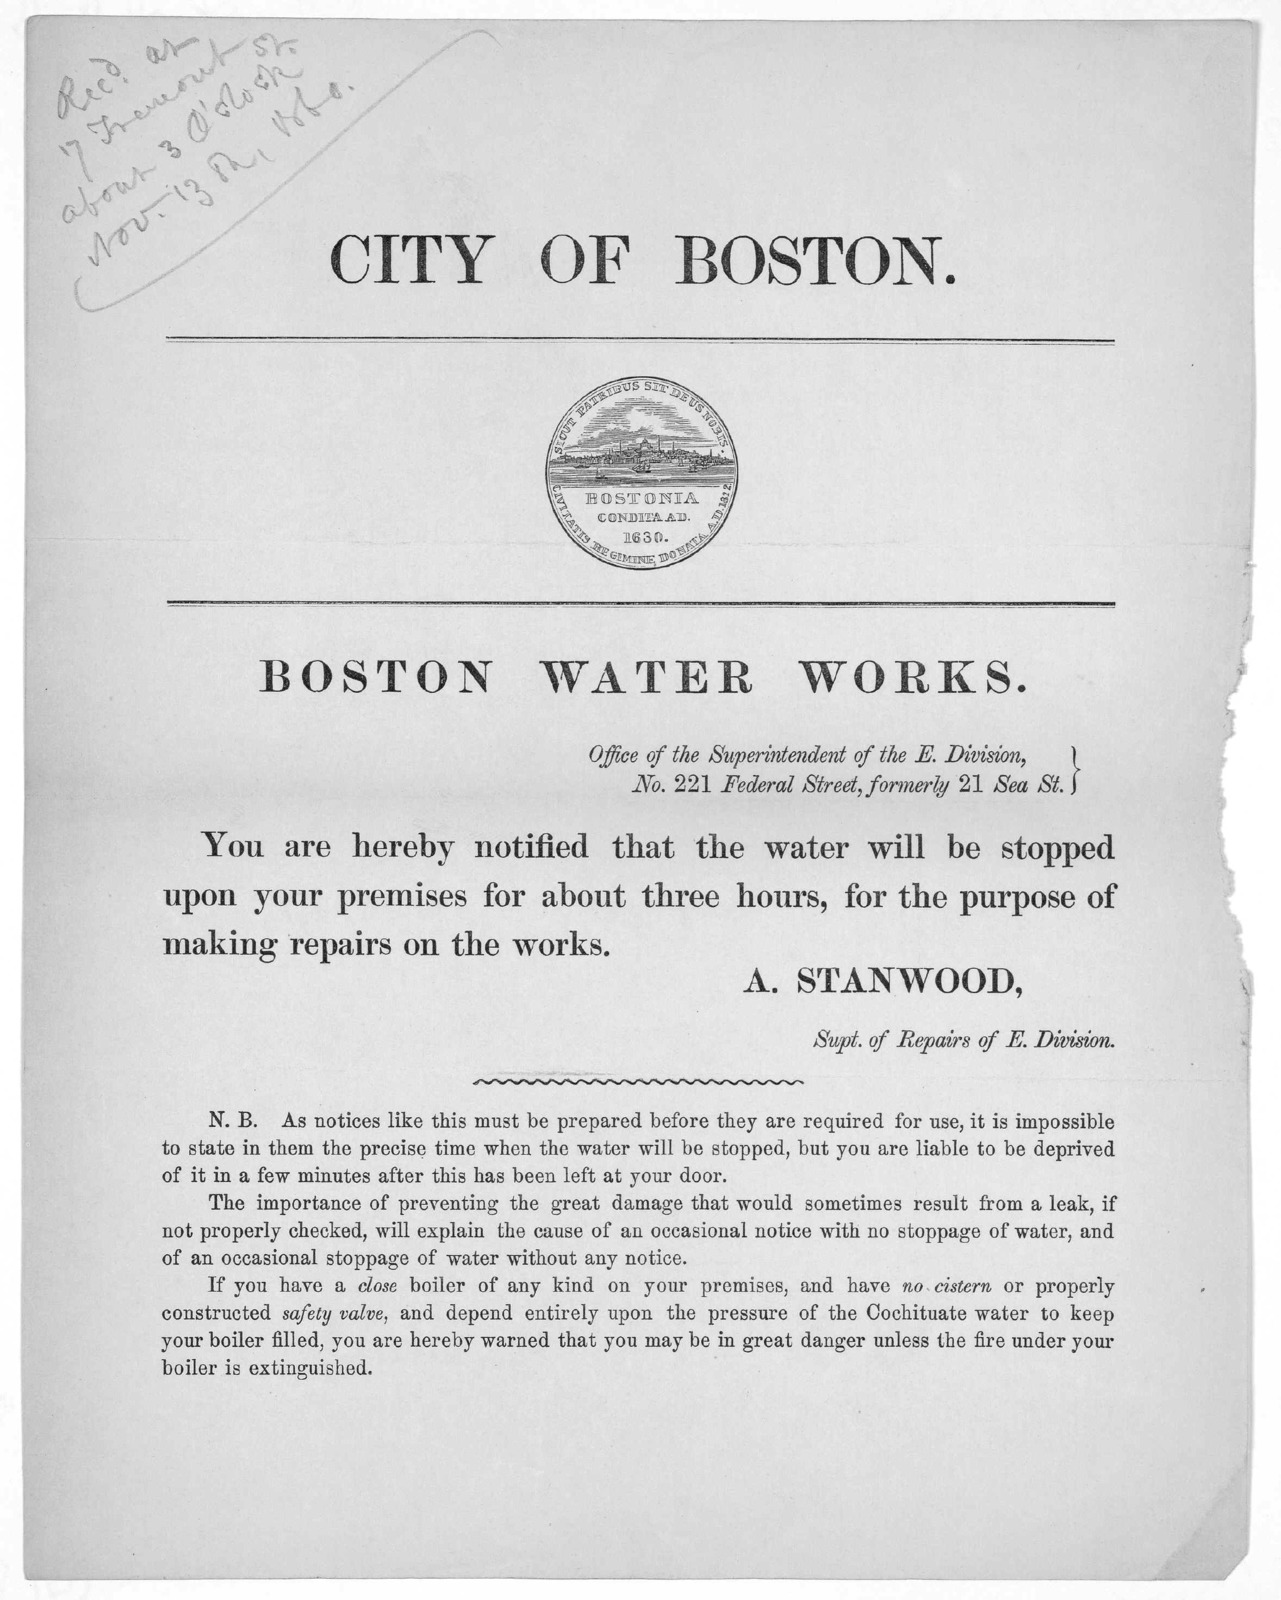 City of Boston. Boston water work ... You are hereby notified that the water will be stopped upon your premises for about three hours, for the purpose of making repairs on the works A. Stanwood. S pt. of Repairs of E. Division. [Nov. 13, 1860].